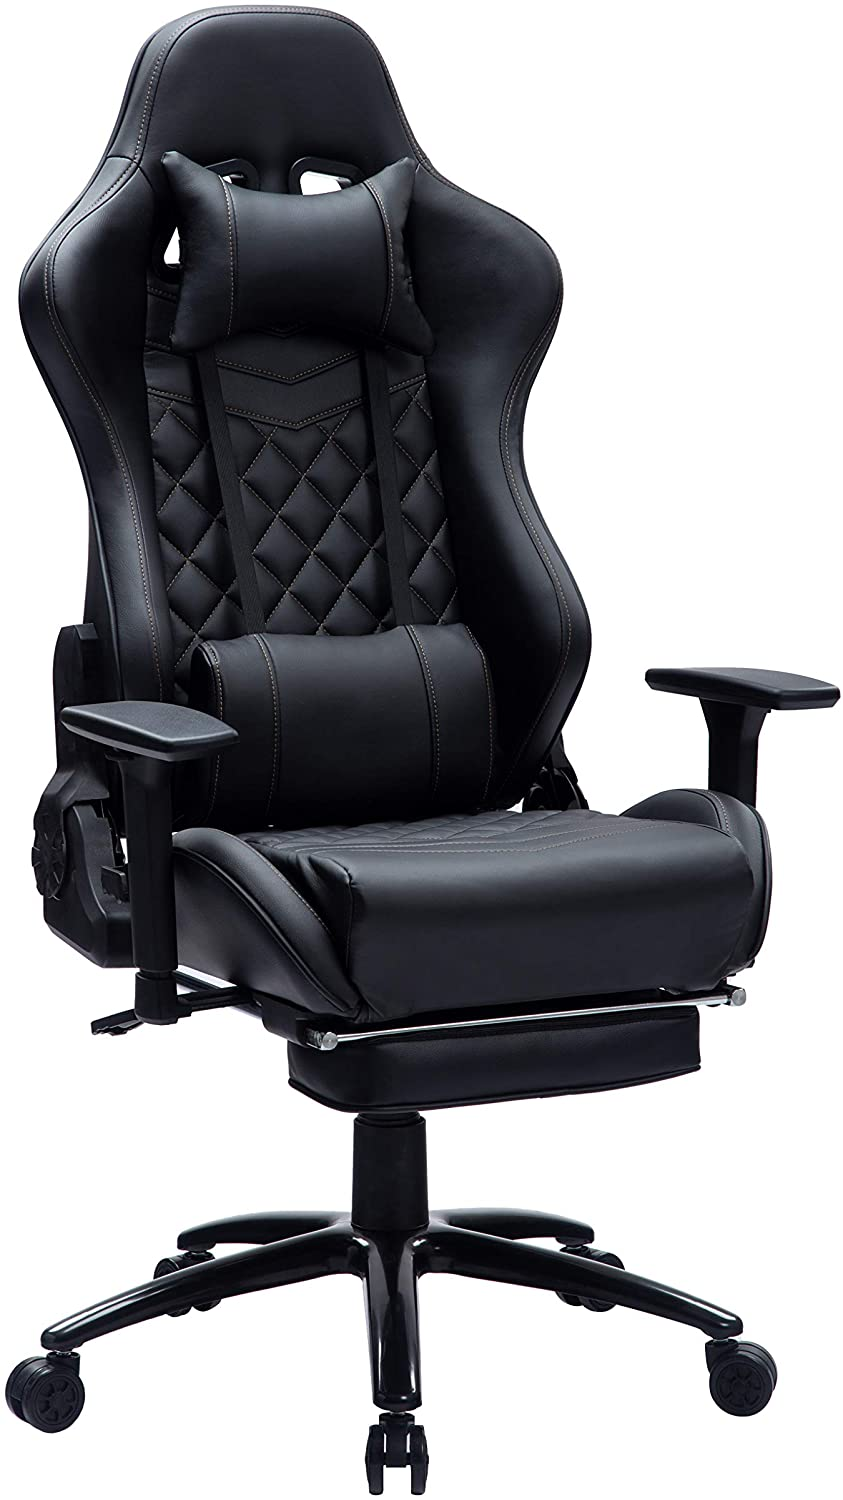 Blue Whale Massage Computer Gaming Chair with Footrest and Metal Base